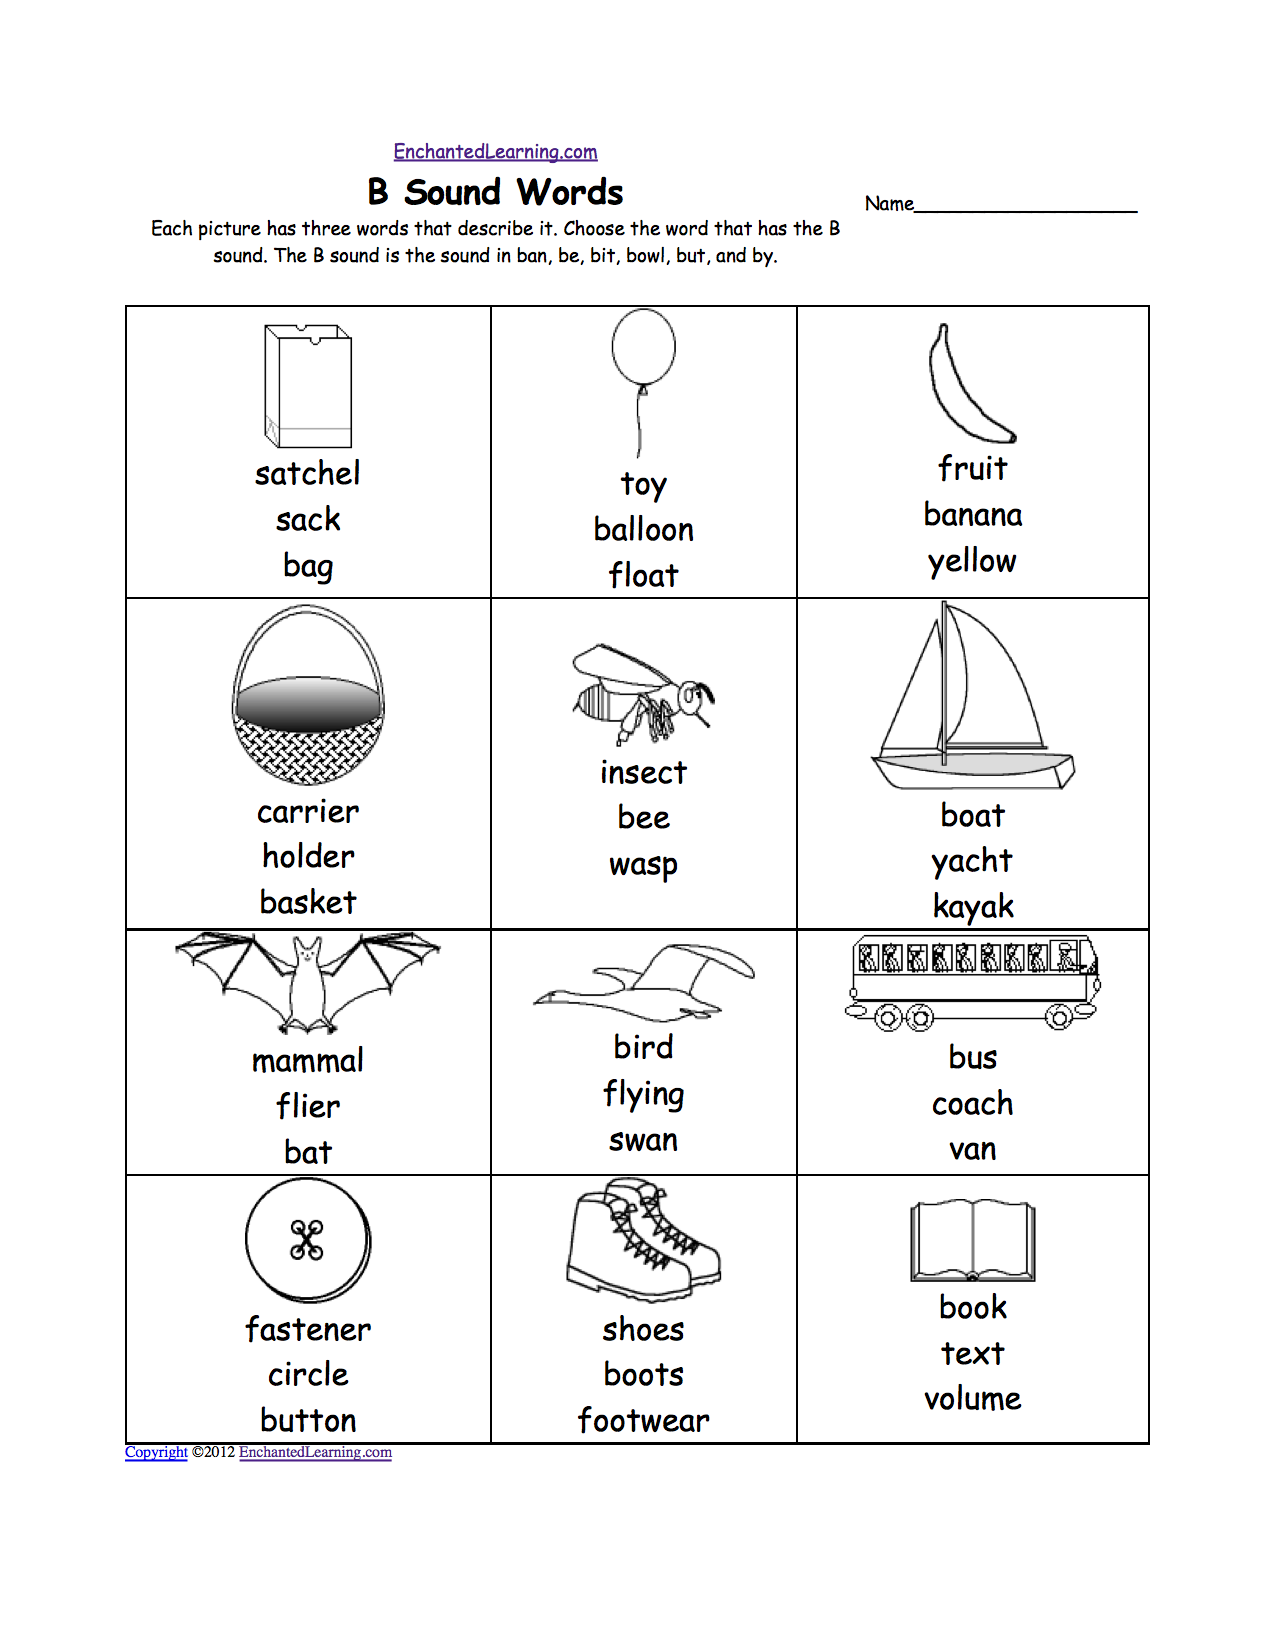 Aldiablosus  Inspiring Phonics Worksheets Multiple Choice Worksheets To Print  With Extraordinary Quotbquot Sound Phonics Worksheet Multiple Choice Each Picture Has Three Words That Describe It Choose The Word That Has A Quotbquot Sound The Quotbquot Sound Is The Sound  With Archaic Alphabet Printables Worksheets Also Mixed Numbers And Improper Fractions Worksheets In Addition  Digit Addition With Regrouping Free Worksheets And Adding Mixed Number Fractions Worksheets As Well As Identifying Variables Worksheet Key Additionally Similar And Congruent Triangles Worksheet From Enchantedlearningcom With Aldiablosus  Extraordinary Phonics Worksheets Multiple Choice Worksheets To Print  With Archaic Quotbquot Sound Phonics Worksheet Multiple Choice Each Picture Has Three Words That Describe It Choose The Word That Has A Quotbquot Sound The Quotbquot Sound Is The Sound  And Inspiring Alphabet Printables Worksheets Also Mixed Numbers And Improper Fractions Worksheets In Addition  Digit Addition With Regrouping Free Worksheets From Enchantedlearningcom